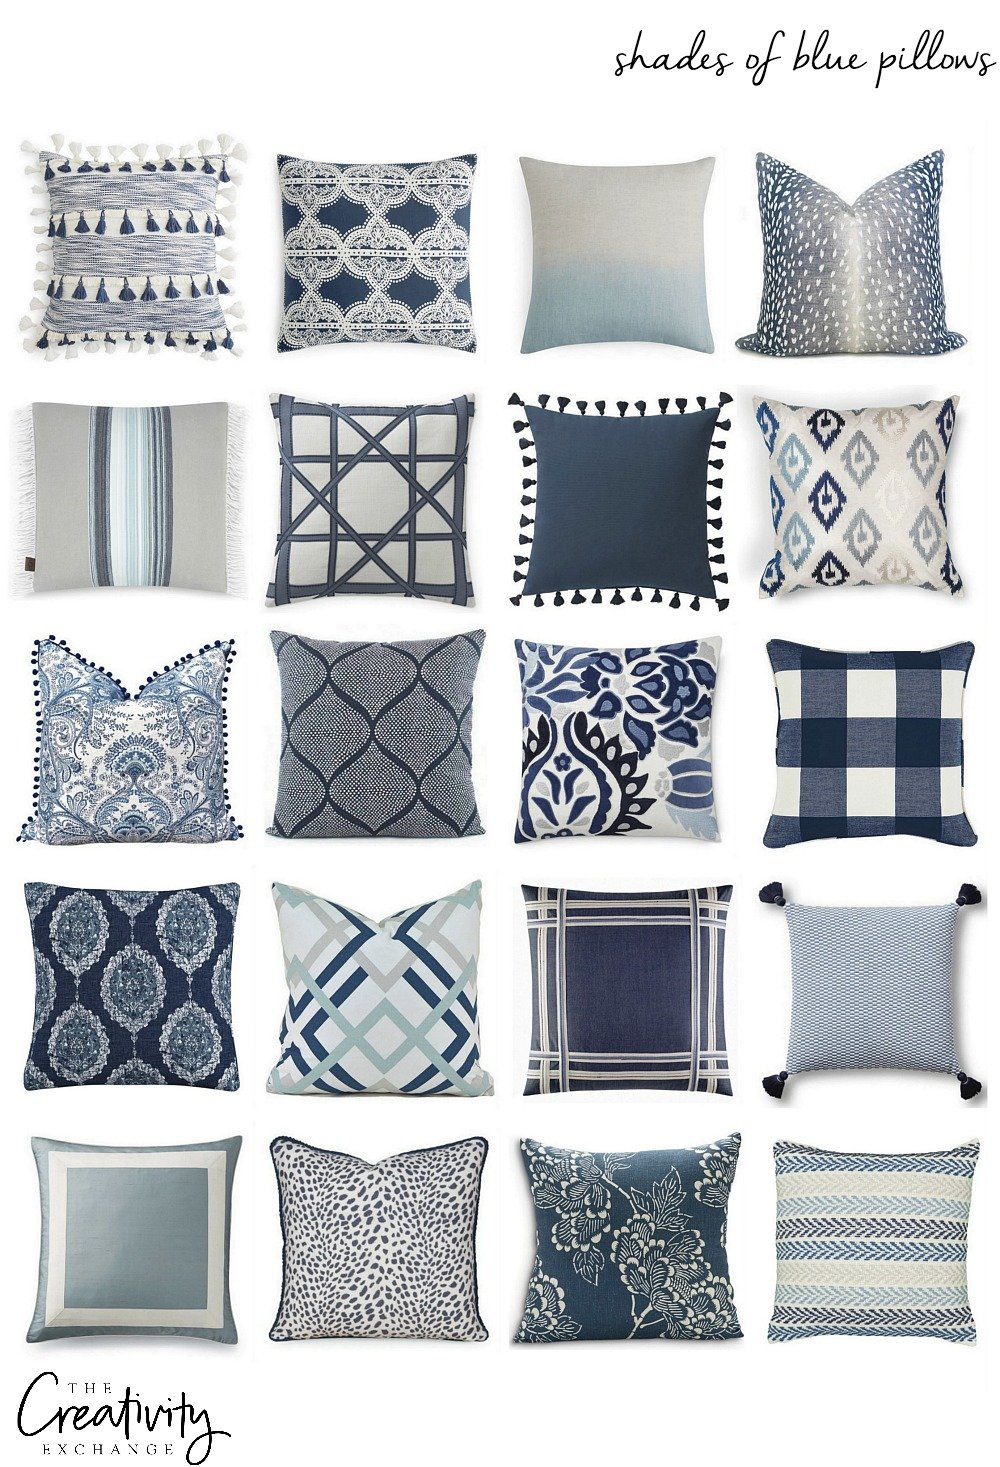 Mixing Pillow Patterns. Pillow Sources